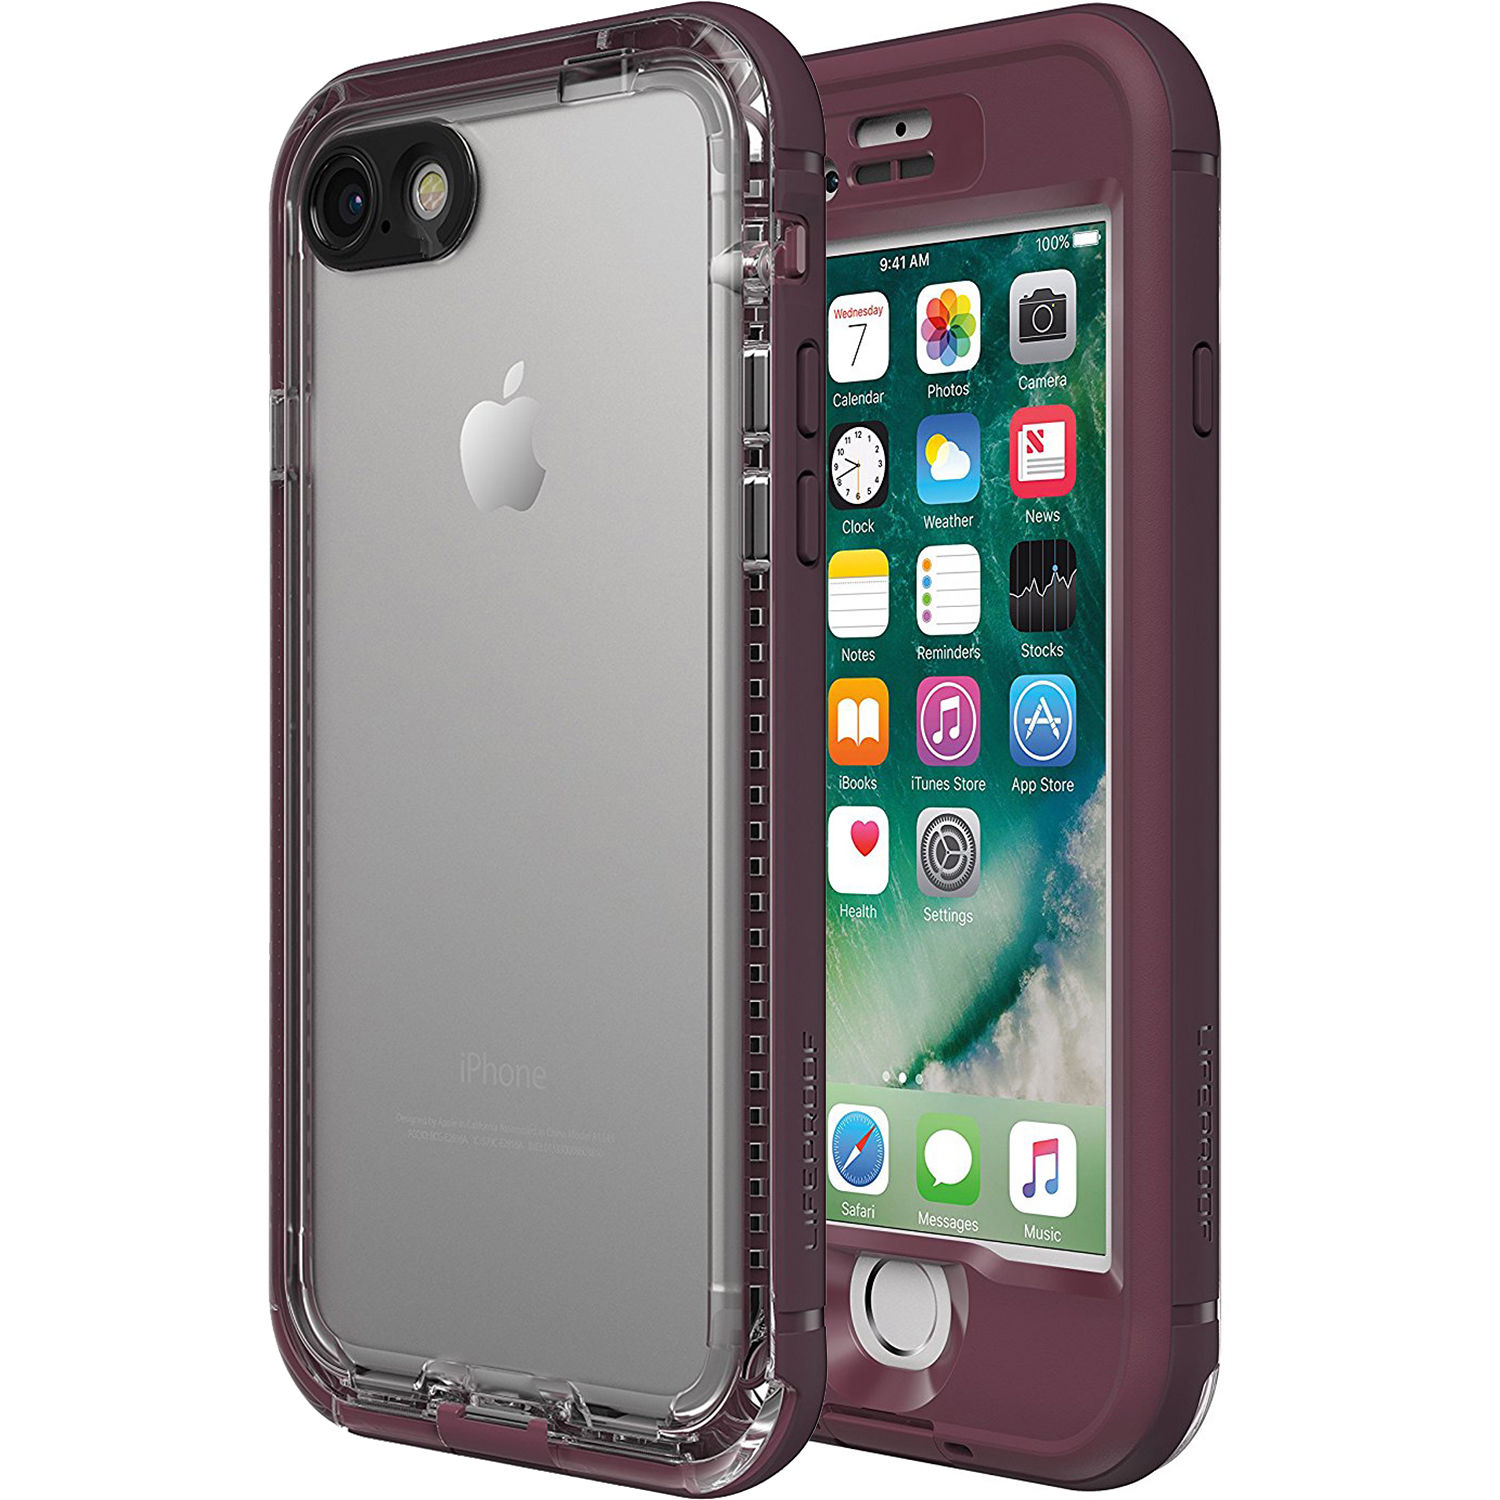 cheap for discount 427c5 5d3b5 LifeProof nüüd Case for iPhone 7 (Plum Reef Purple)